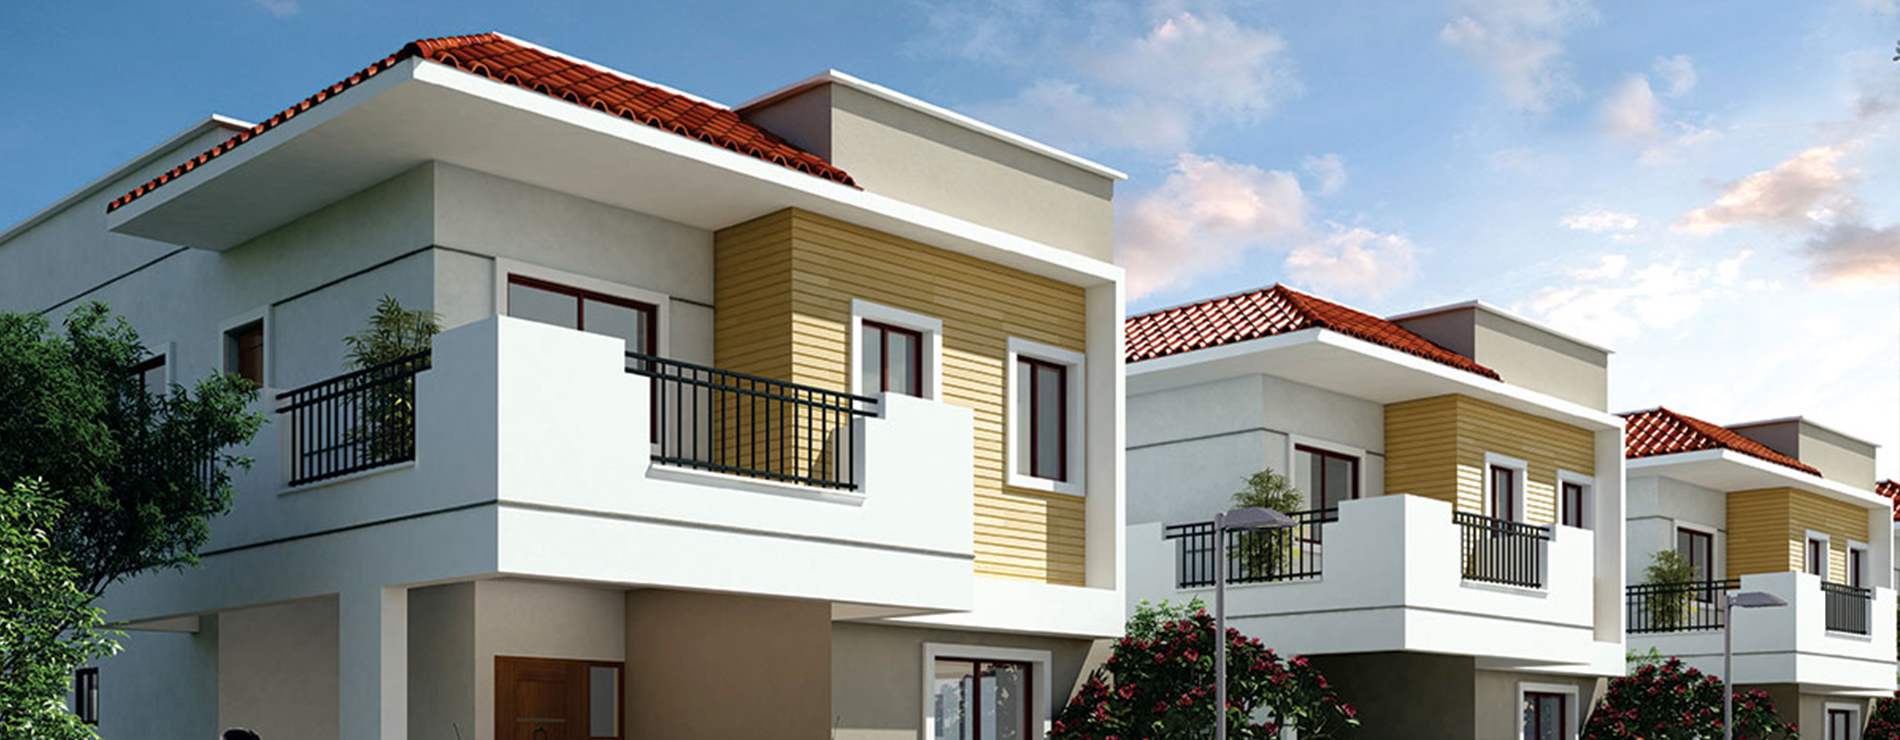 apartments in singasandra